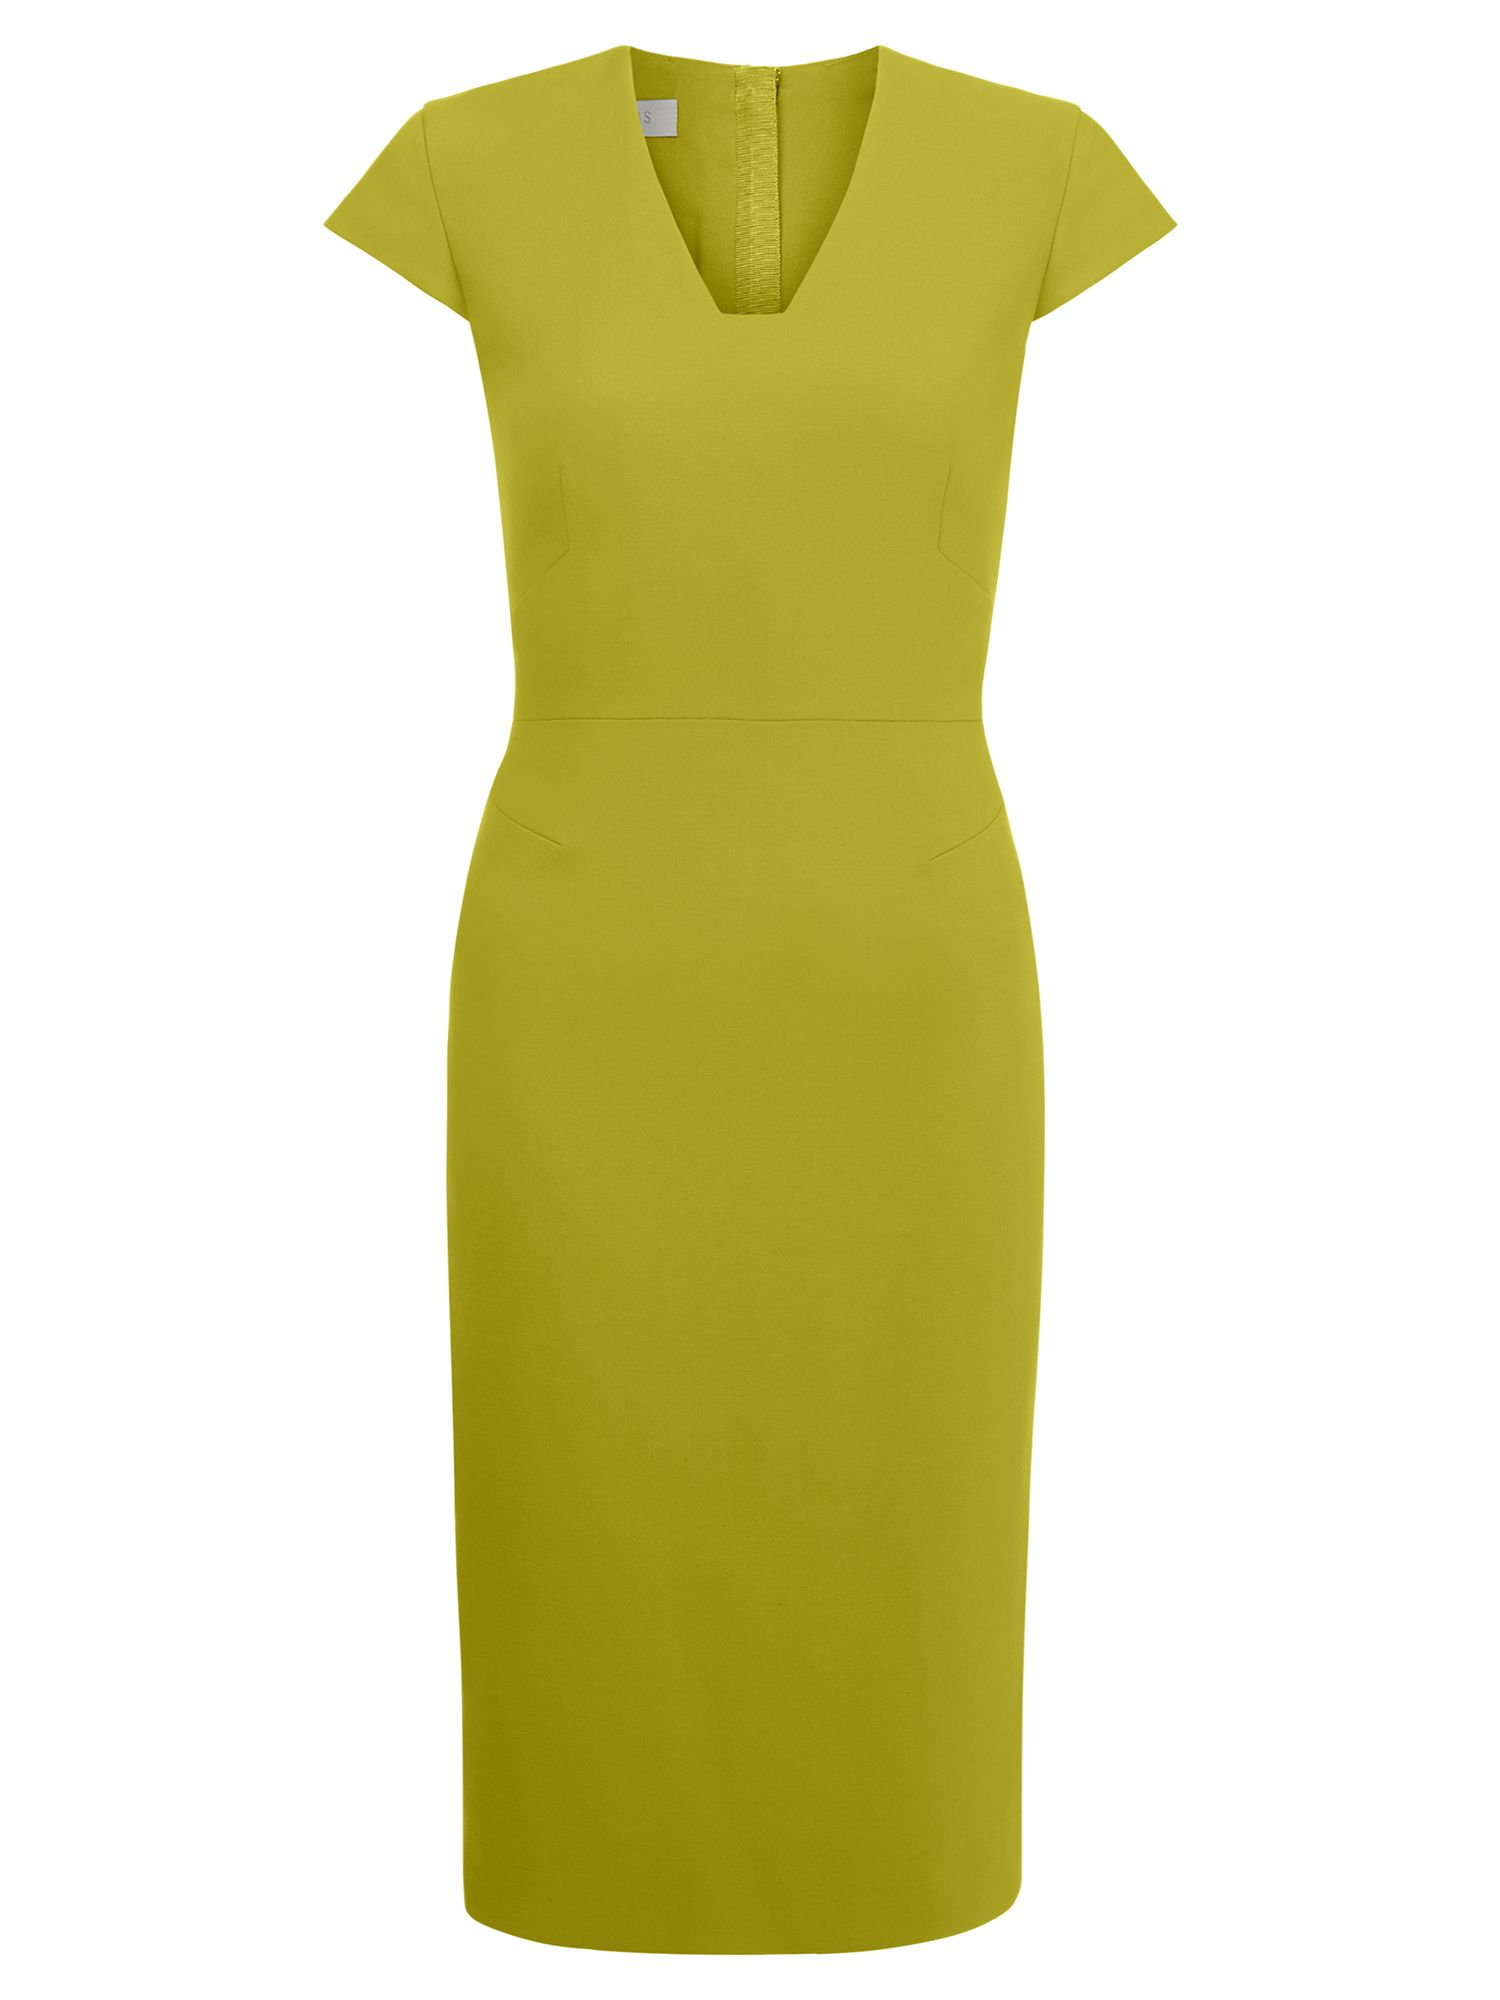 Hobbs Louisa Dress, Yellow